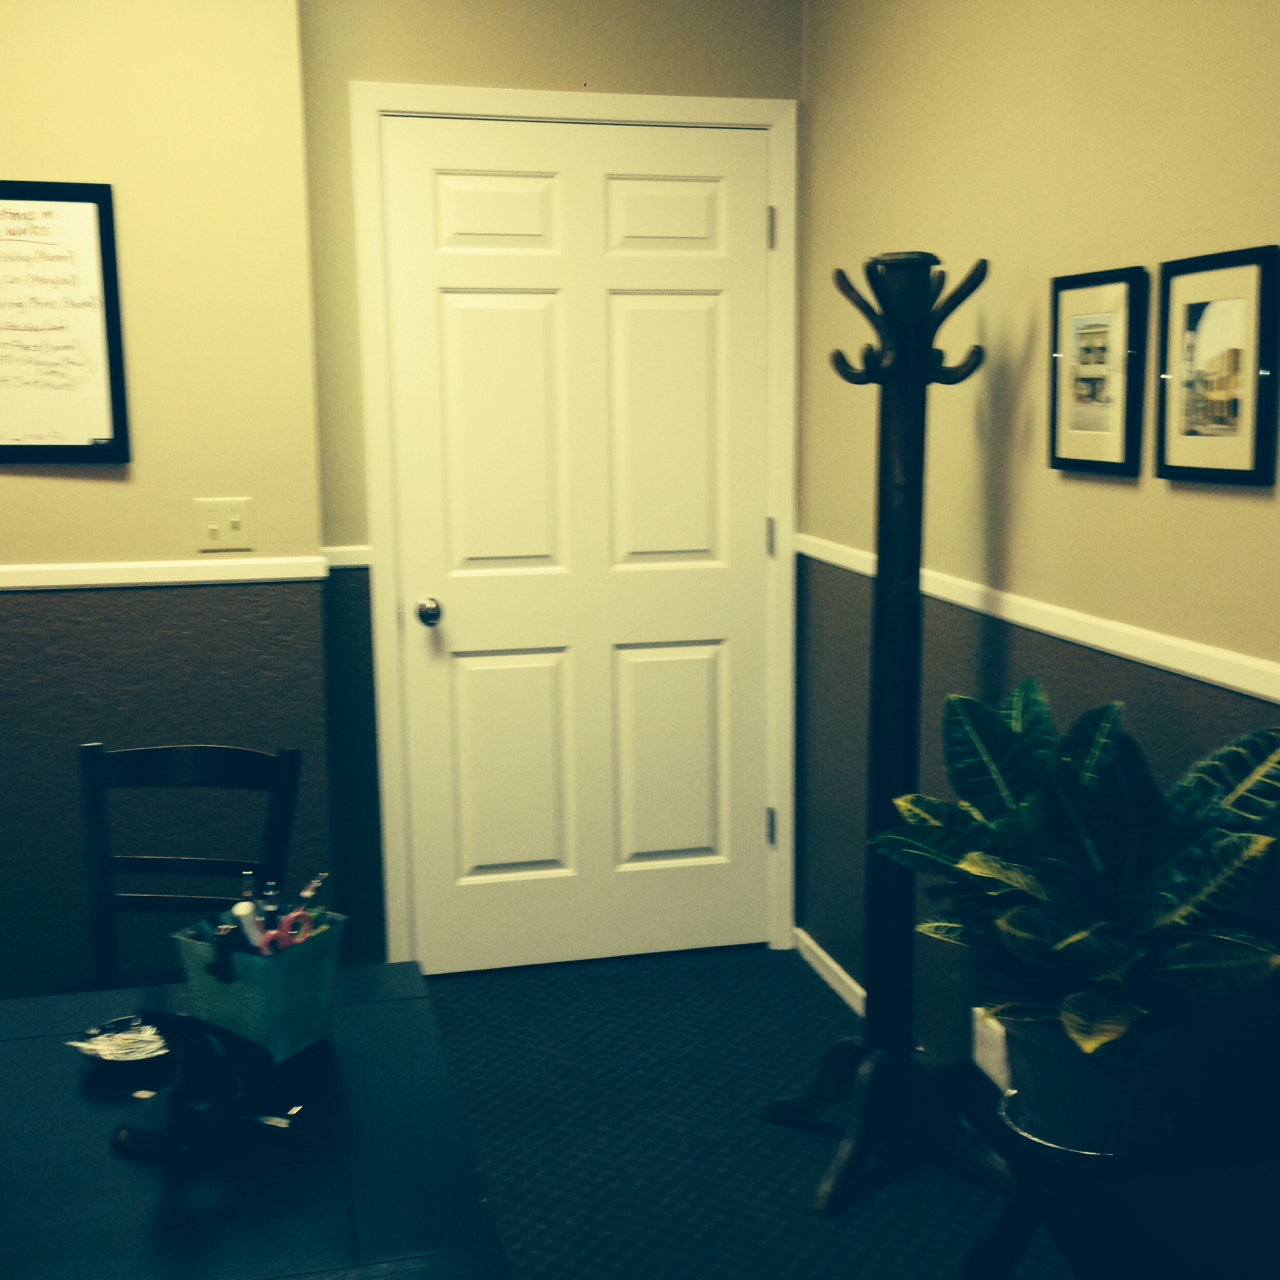 Barrett Property Management Office Location at 101 Providence Mine Road, Suite 103F, Nevada City, CA 95959